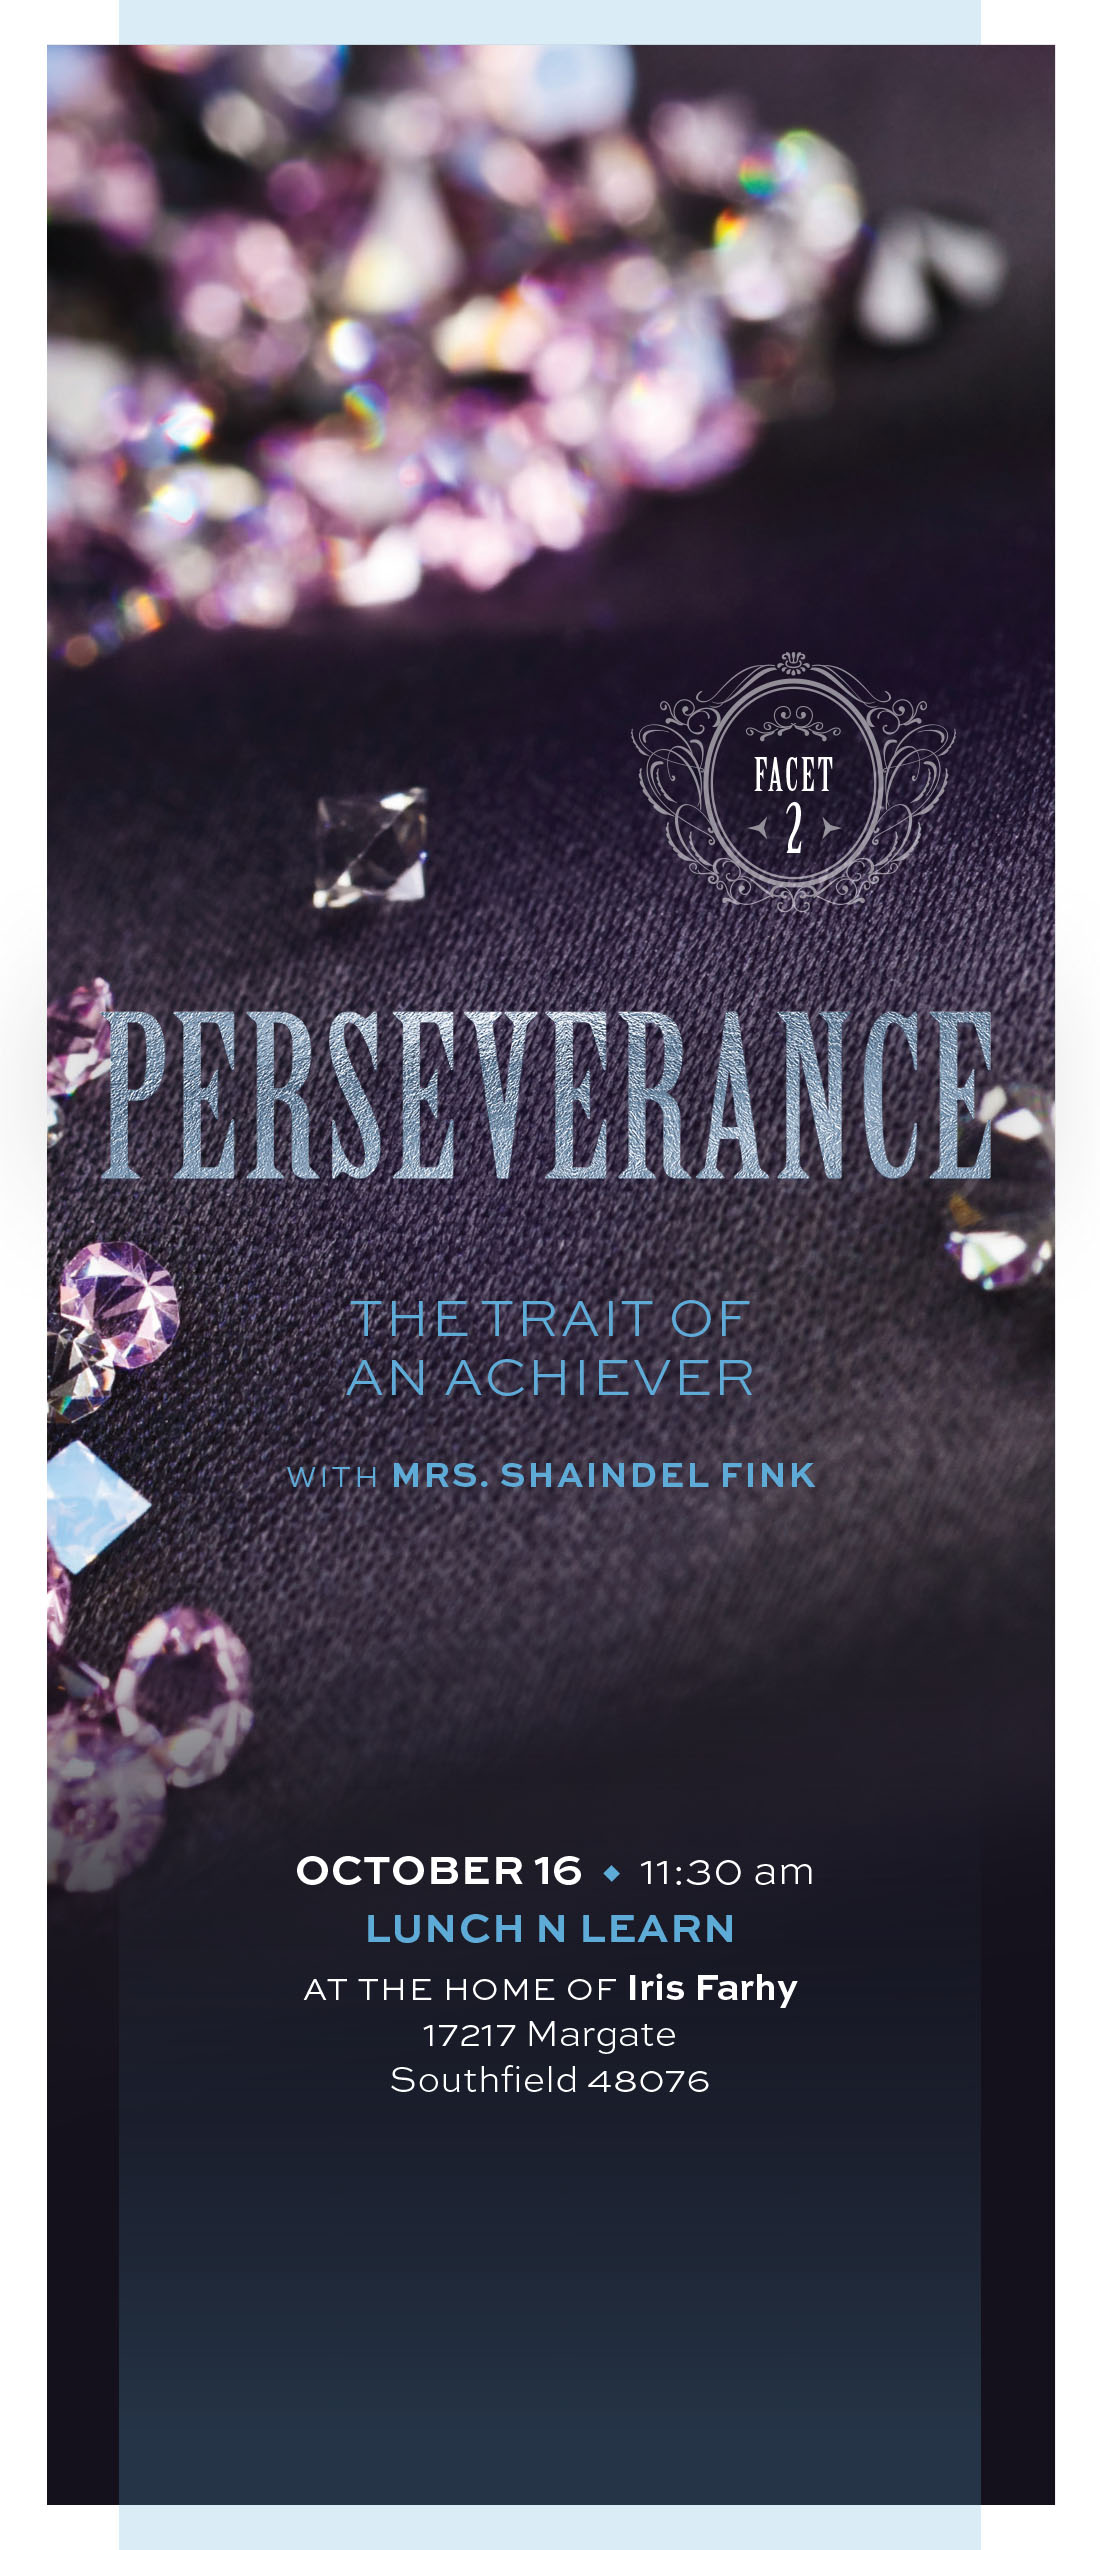 Facets - Perseverance: The Trait of an Achiever Lunch 'n Learn